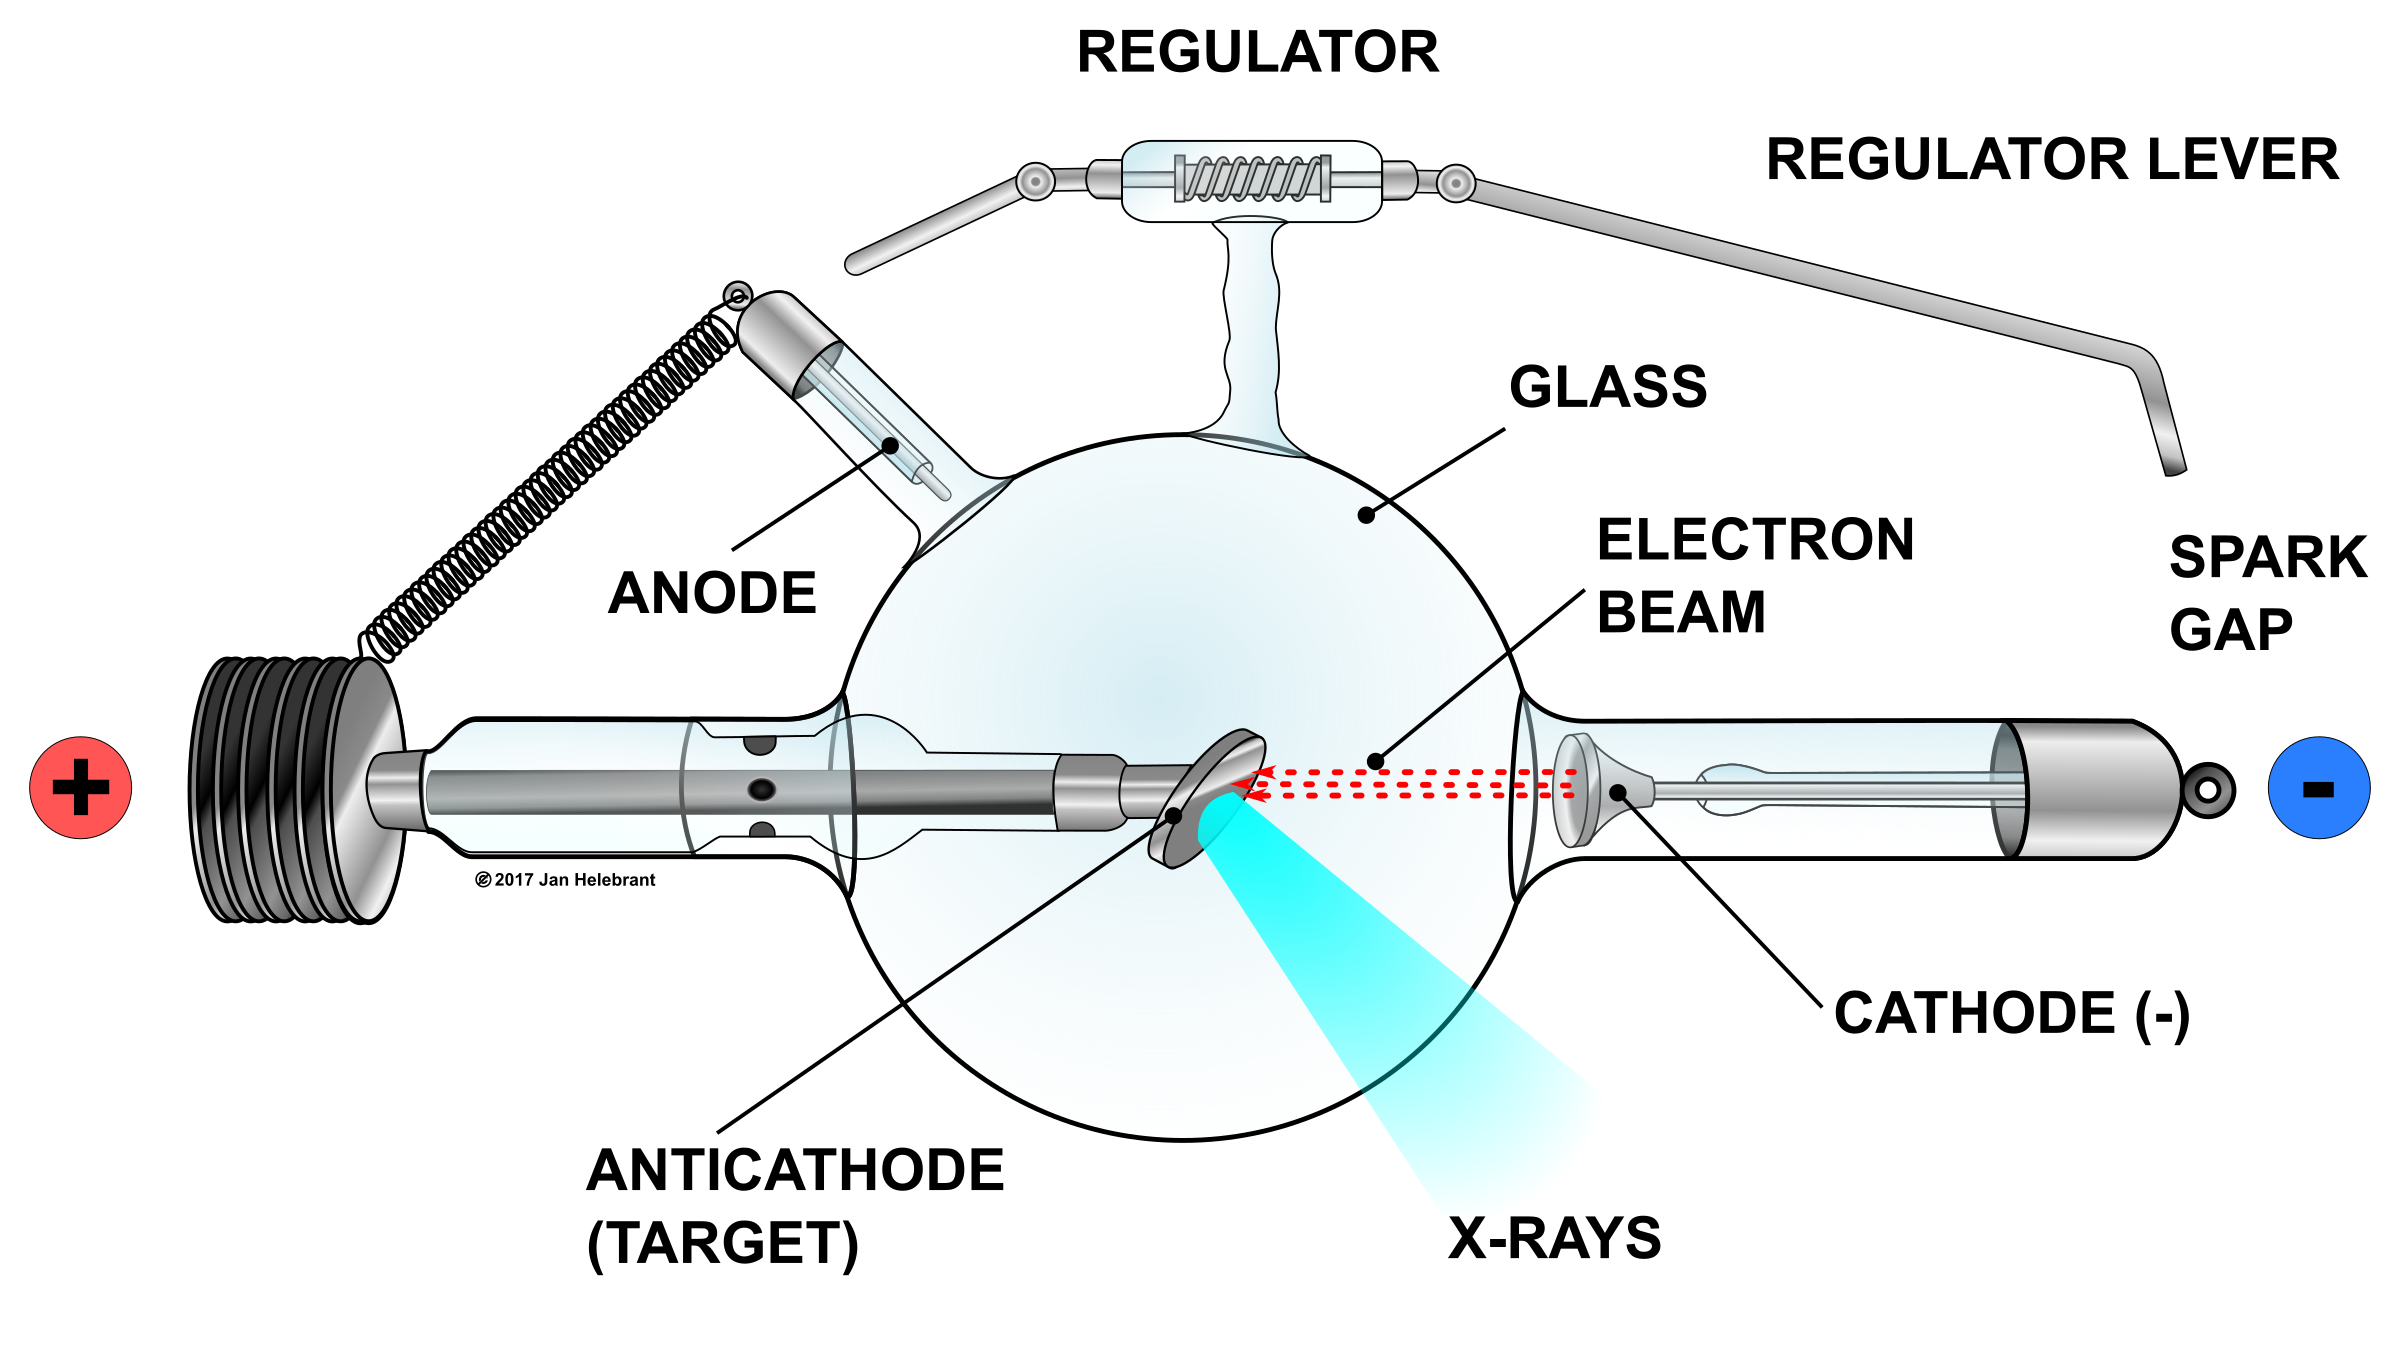 Illustration of Crookes X-ray tube by Juhele